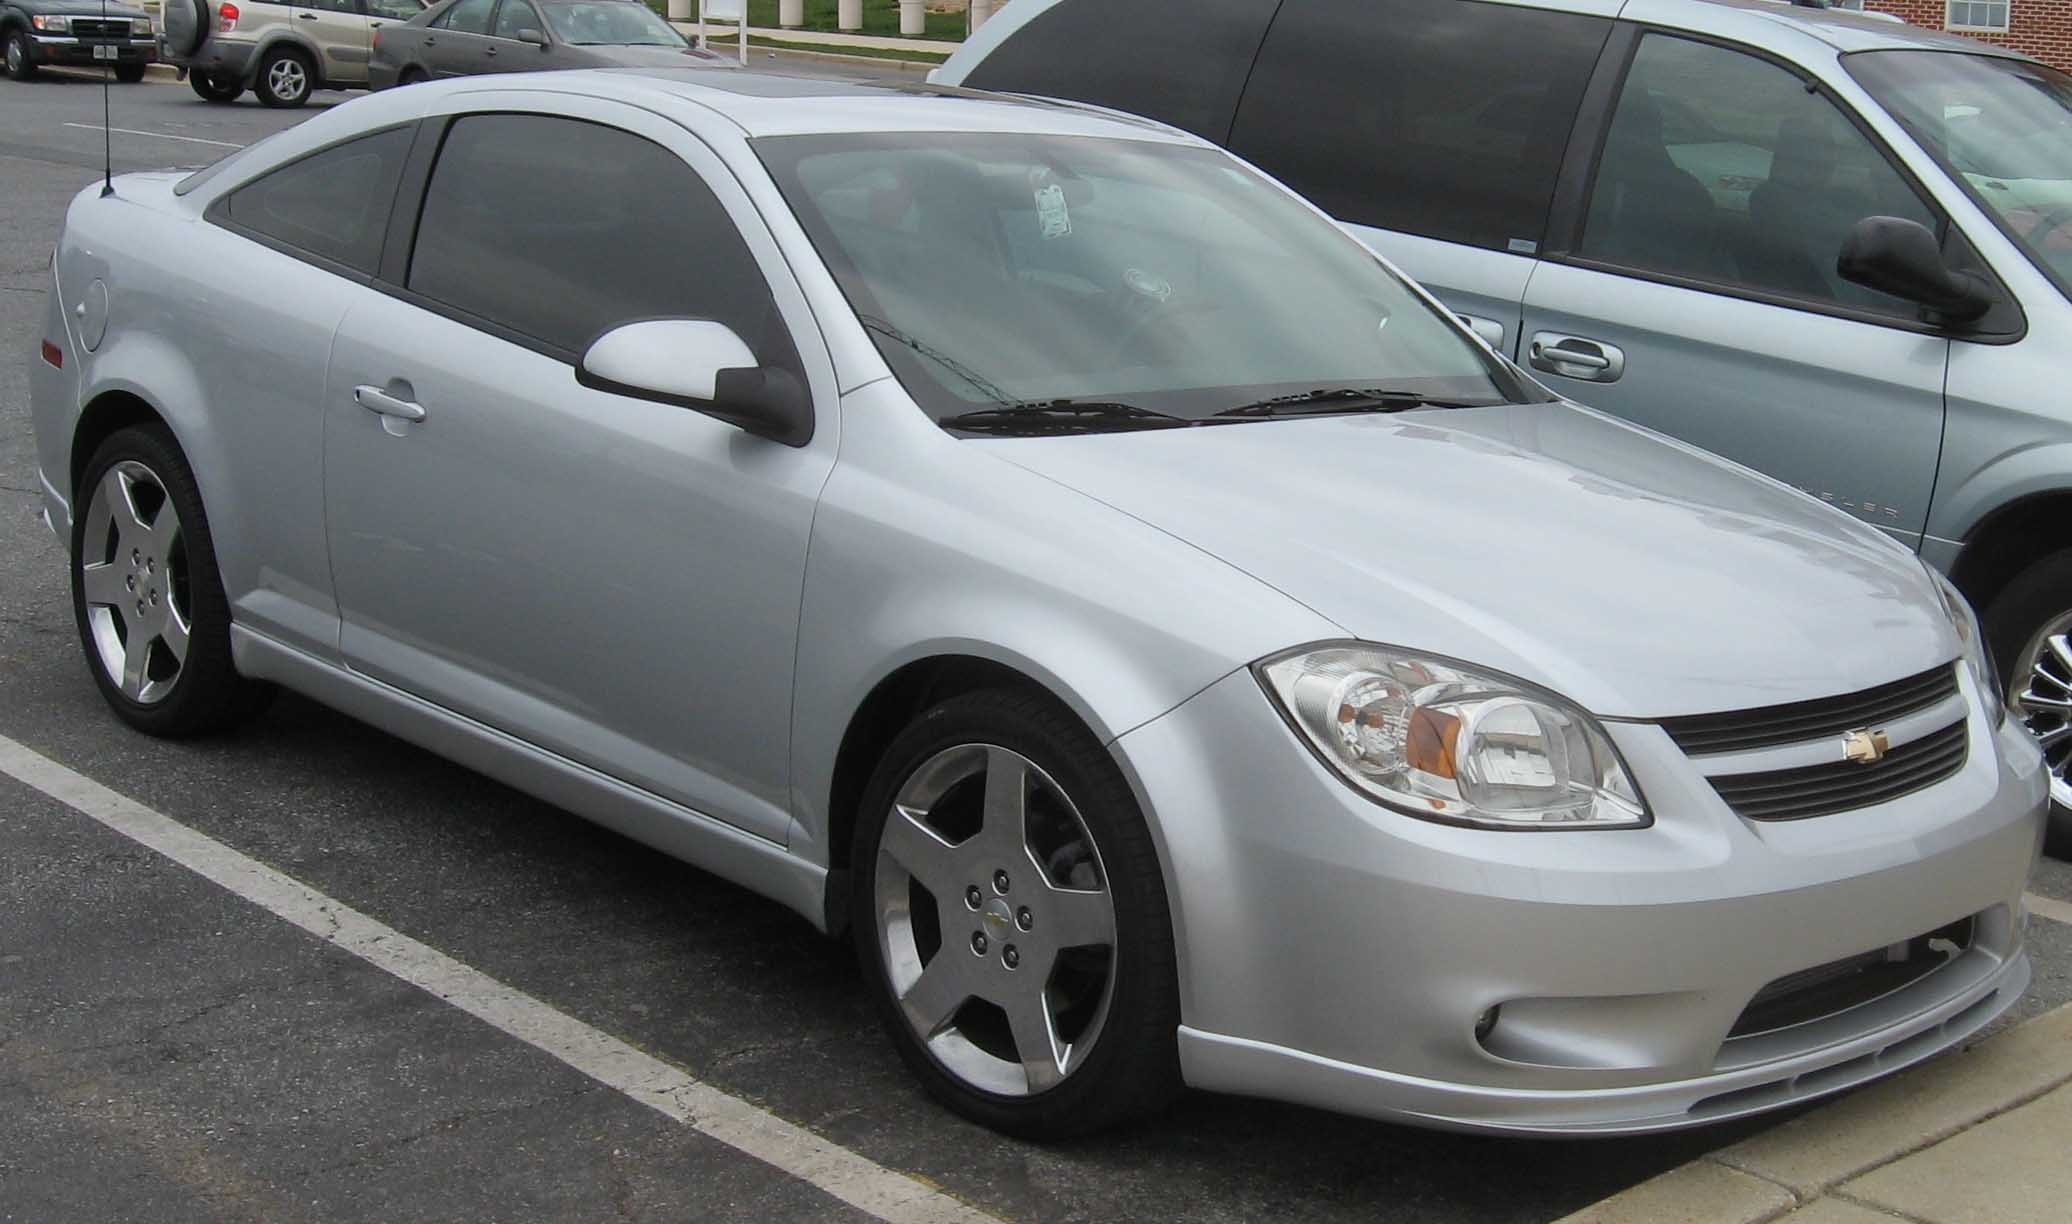 CHEVROLET COBALT COUPE white